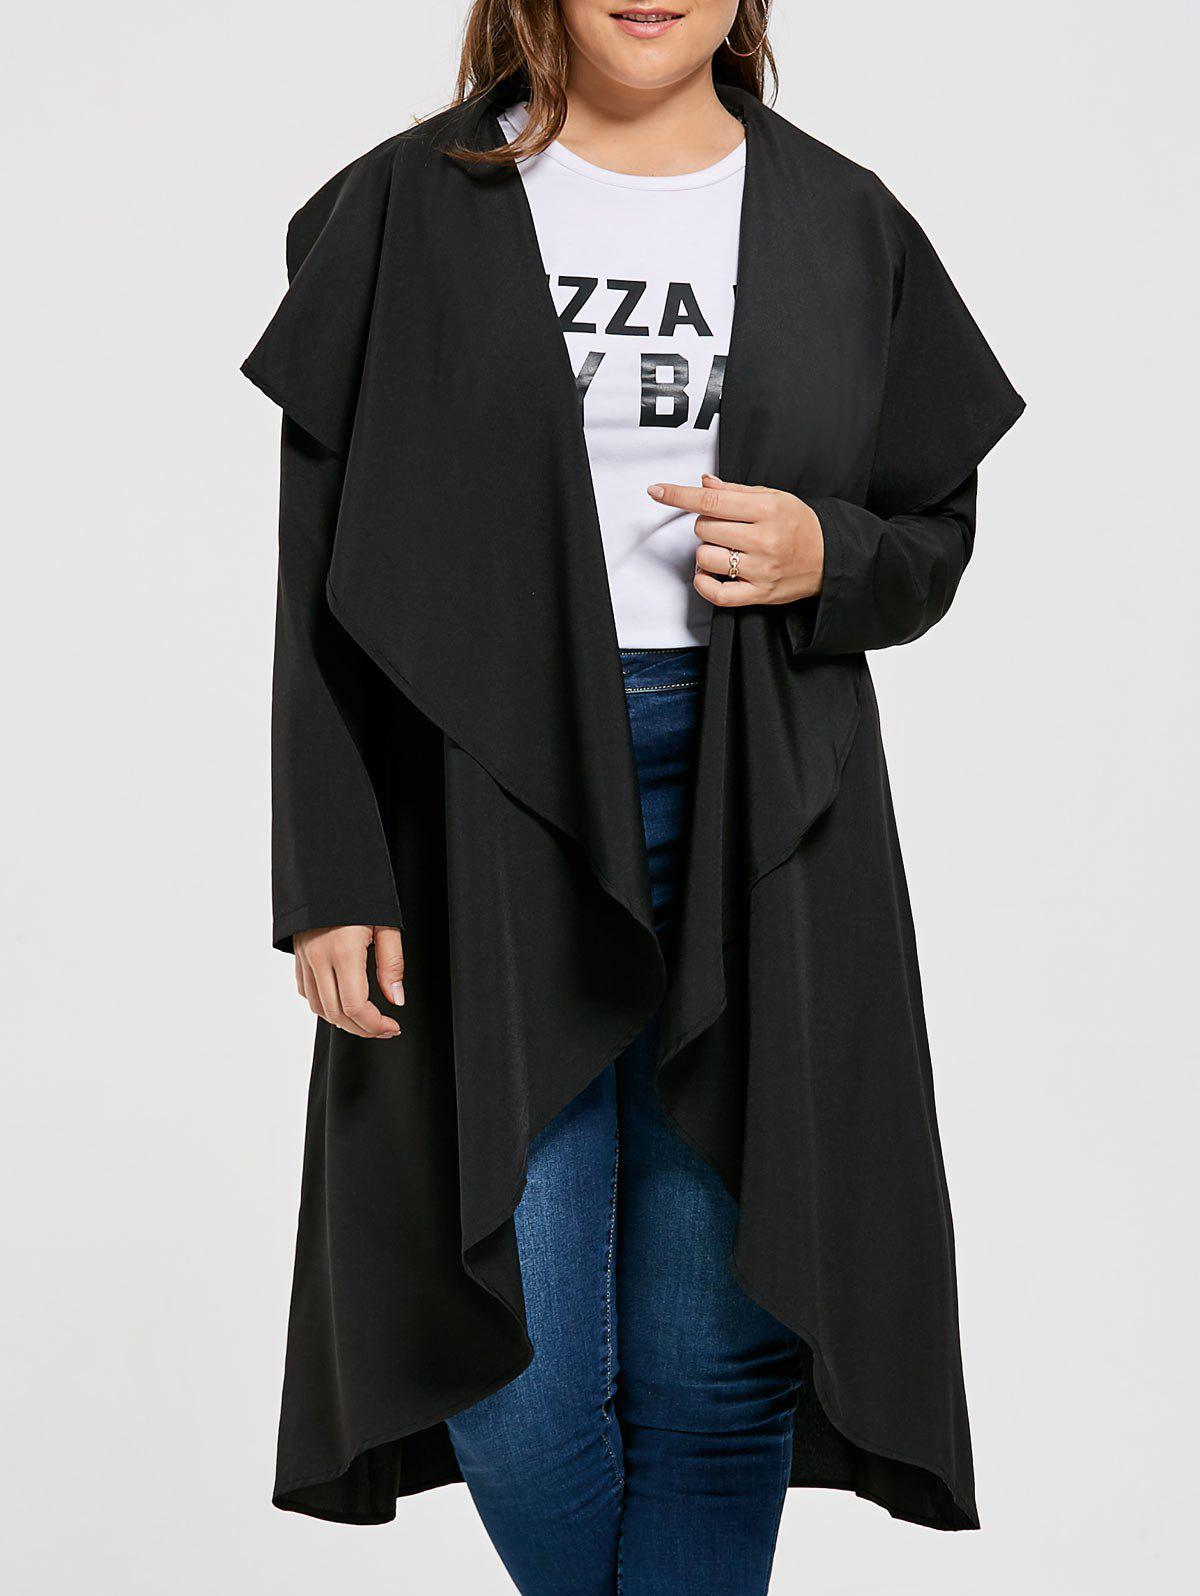 Open Front Plus Size Drape Maxi CoatWOMEN<br><br>Size: 4XL; Color: BLACK; Clothes Type: Trench; Material: Cotton Blends,Polyester; Type: Asymmetric Length; Shirt Length: X-Long; Sleeve Length: Full; Collar: Collarless; Pattern Type: Solid; Style: Fashion; Season: Fall,Winter; Weight: 0.4600kg; Package Contents: 1 x Coat;